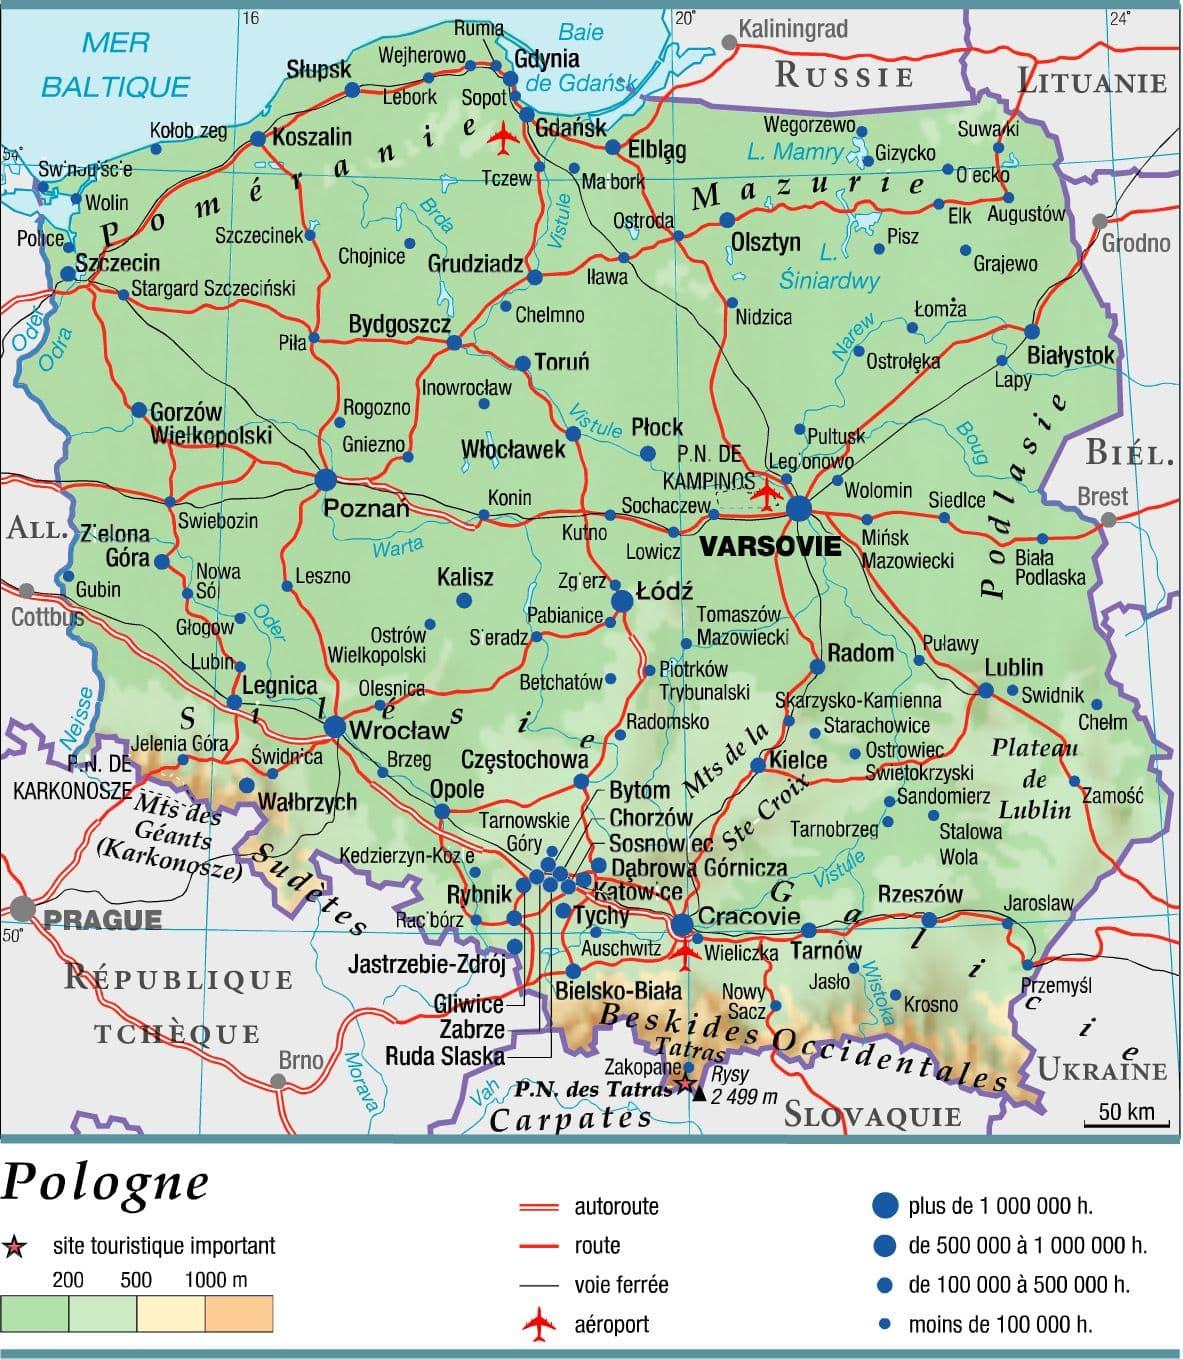 pologne geographie